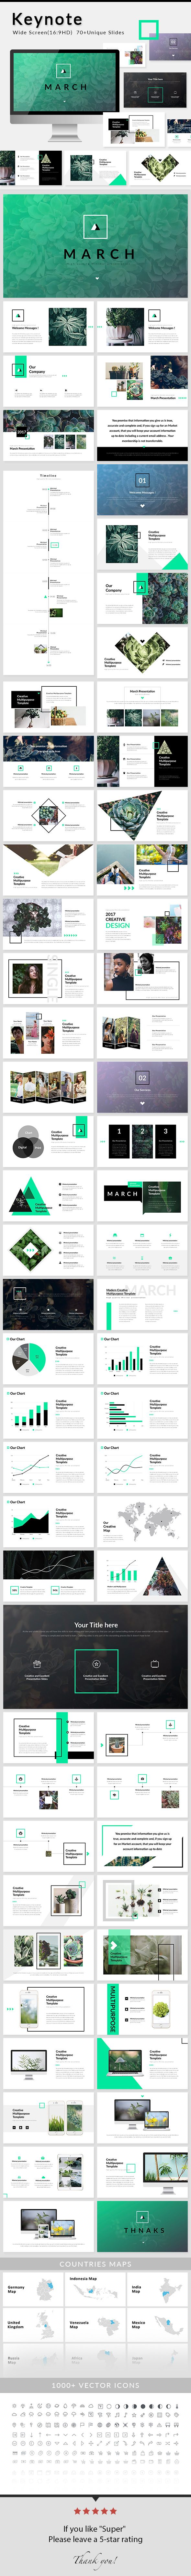 March - Keynote Presentation Template